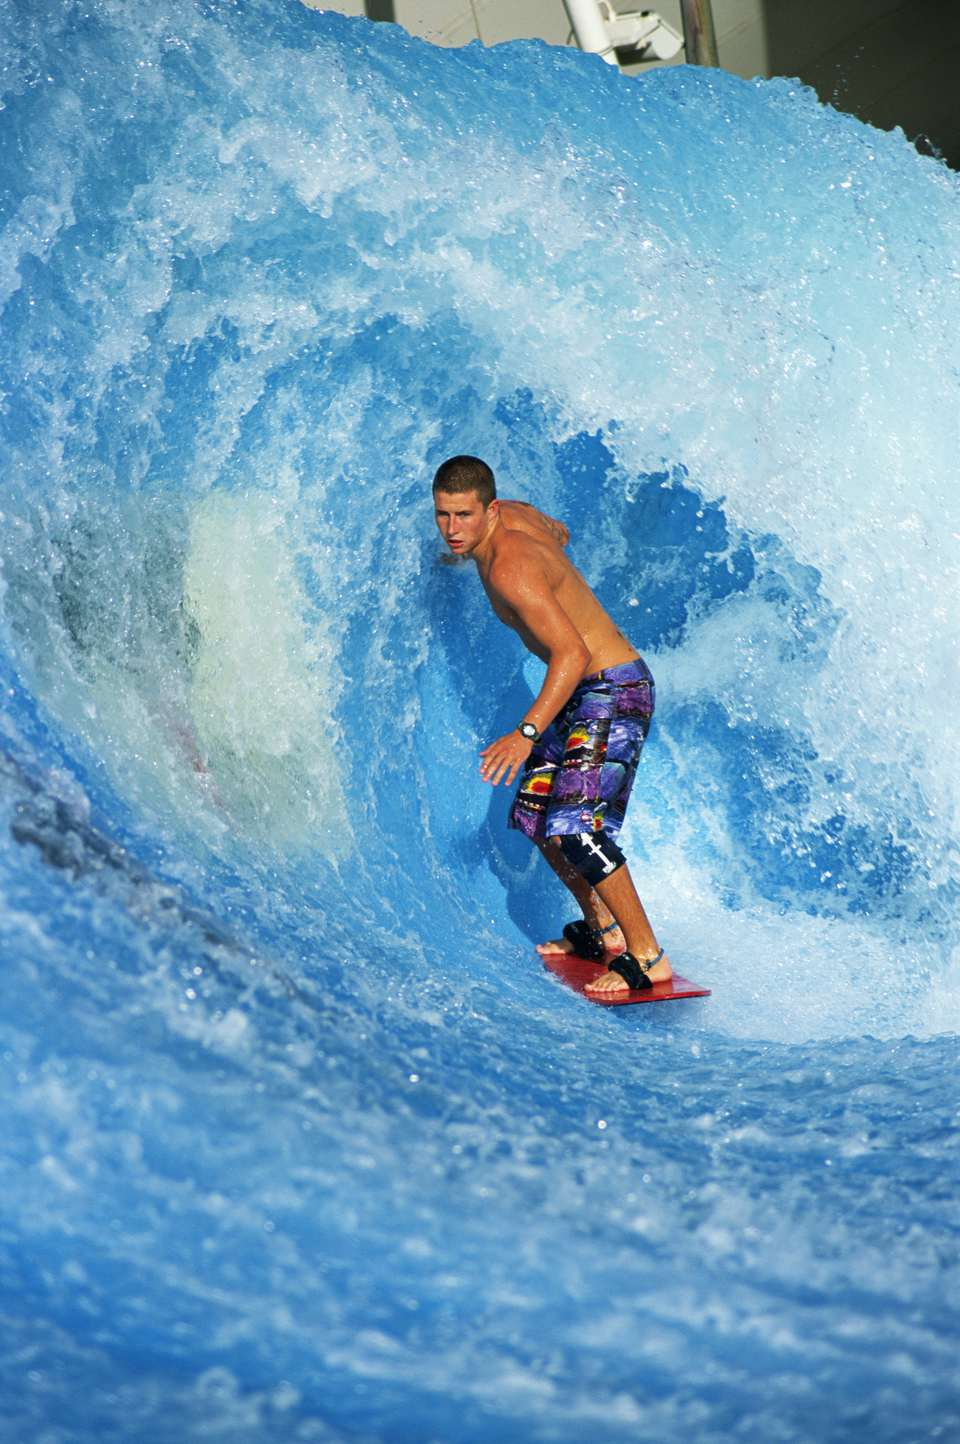 The Waveyard, with indoor surfing in Arizona never materialized.